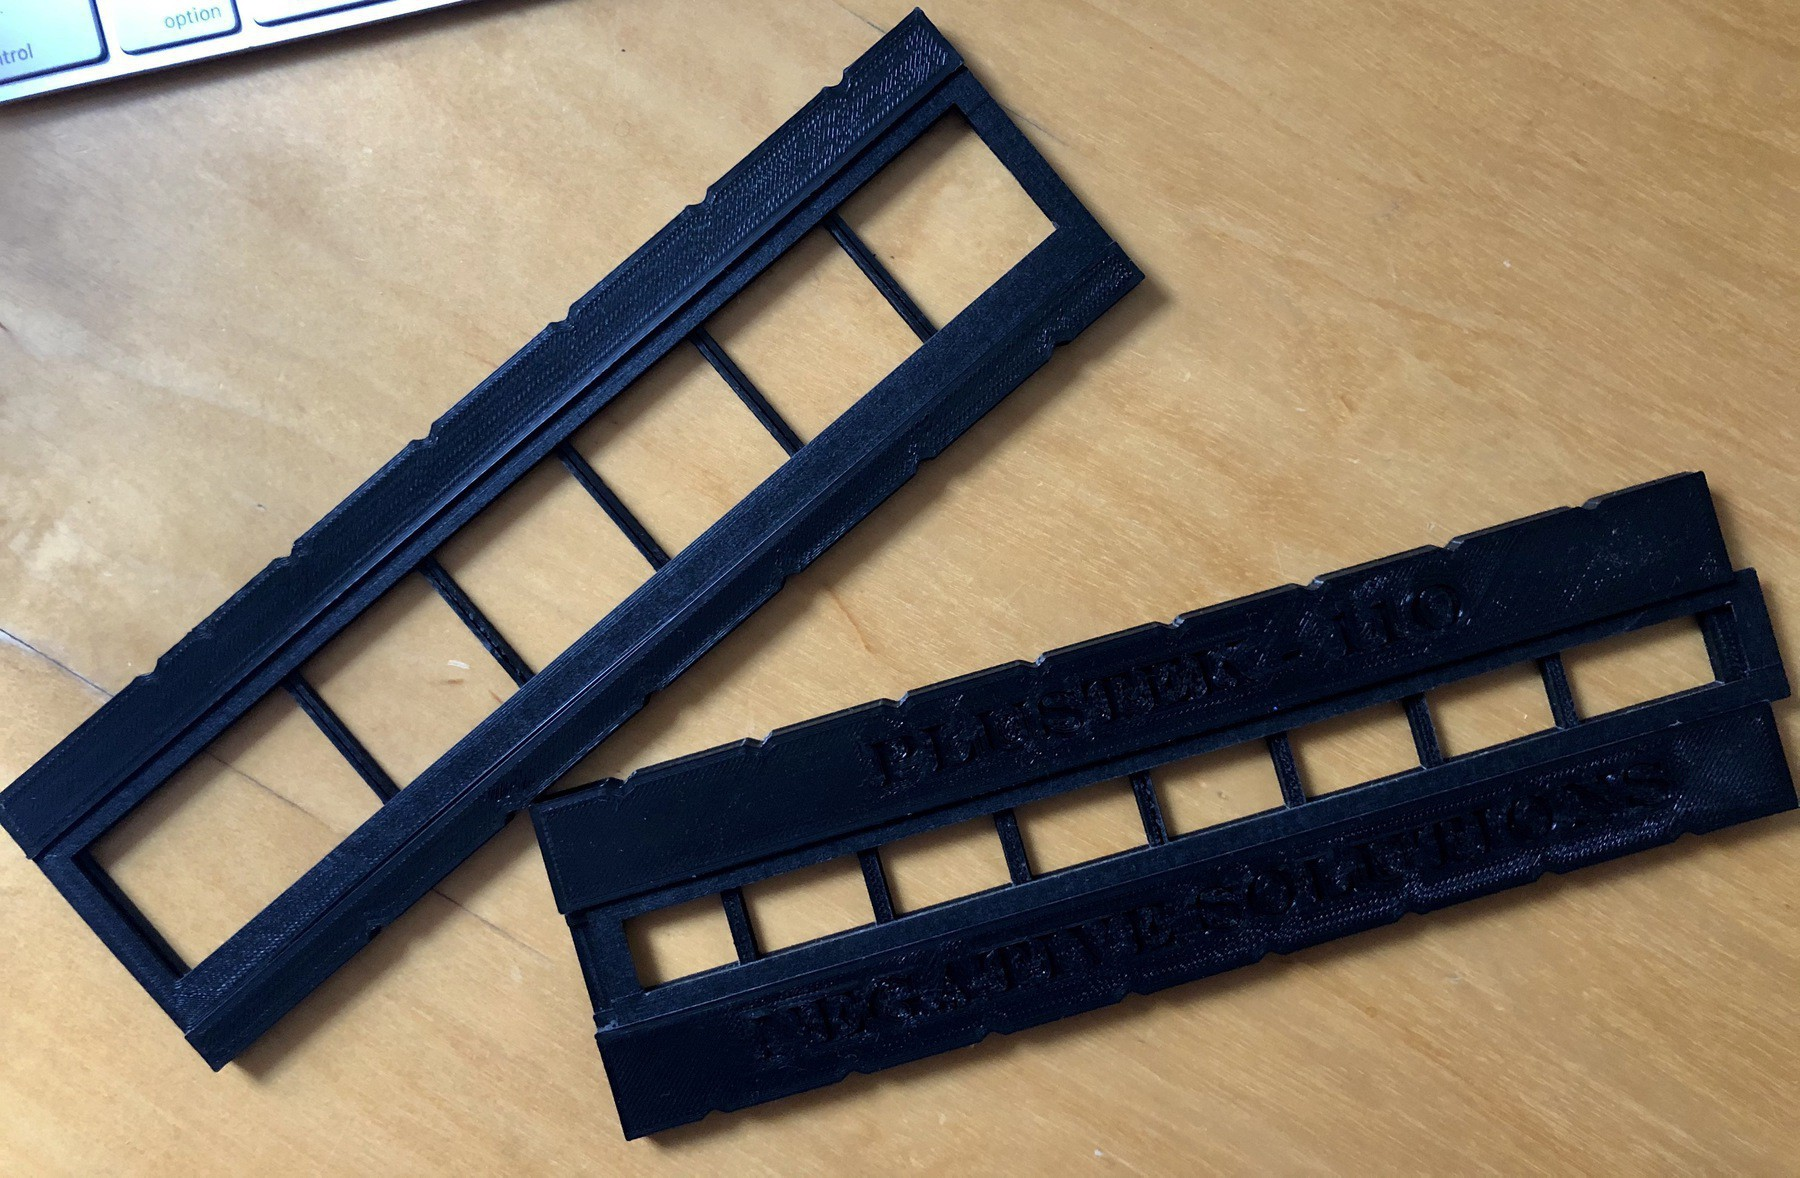 3d Printed neagtive adators for a scanner